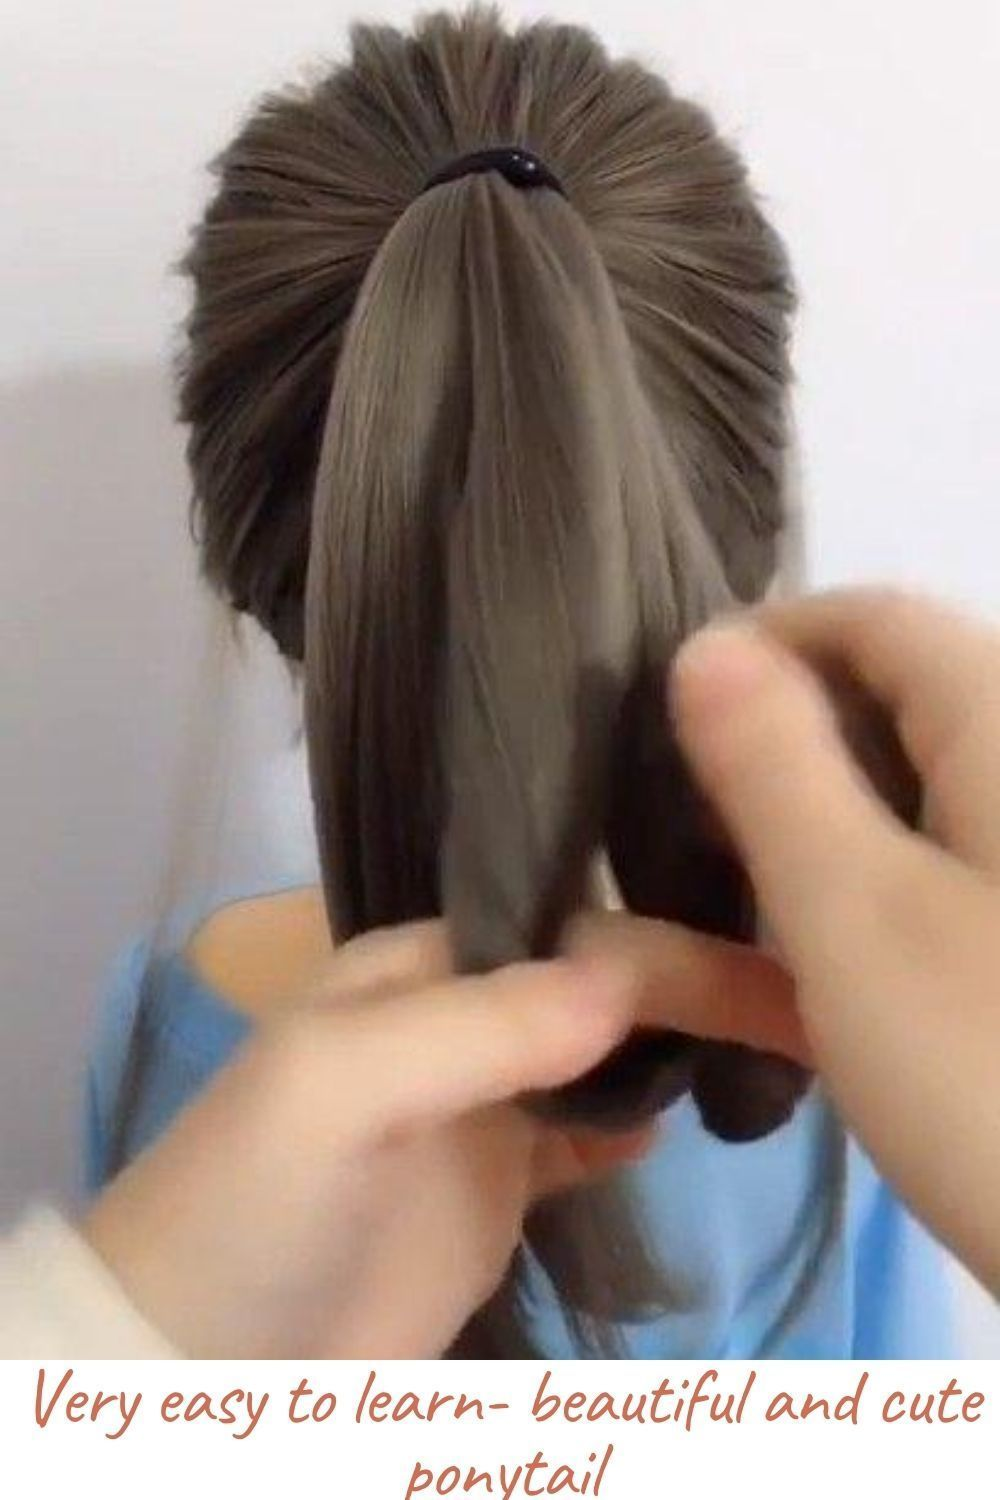 Very Easy To Learn Beautiful And Cute Ponytail In 2020 Hair Styles Long Hair Styles Cute Ponytail Hairstyles